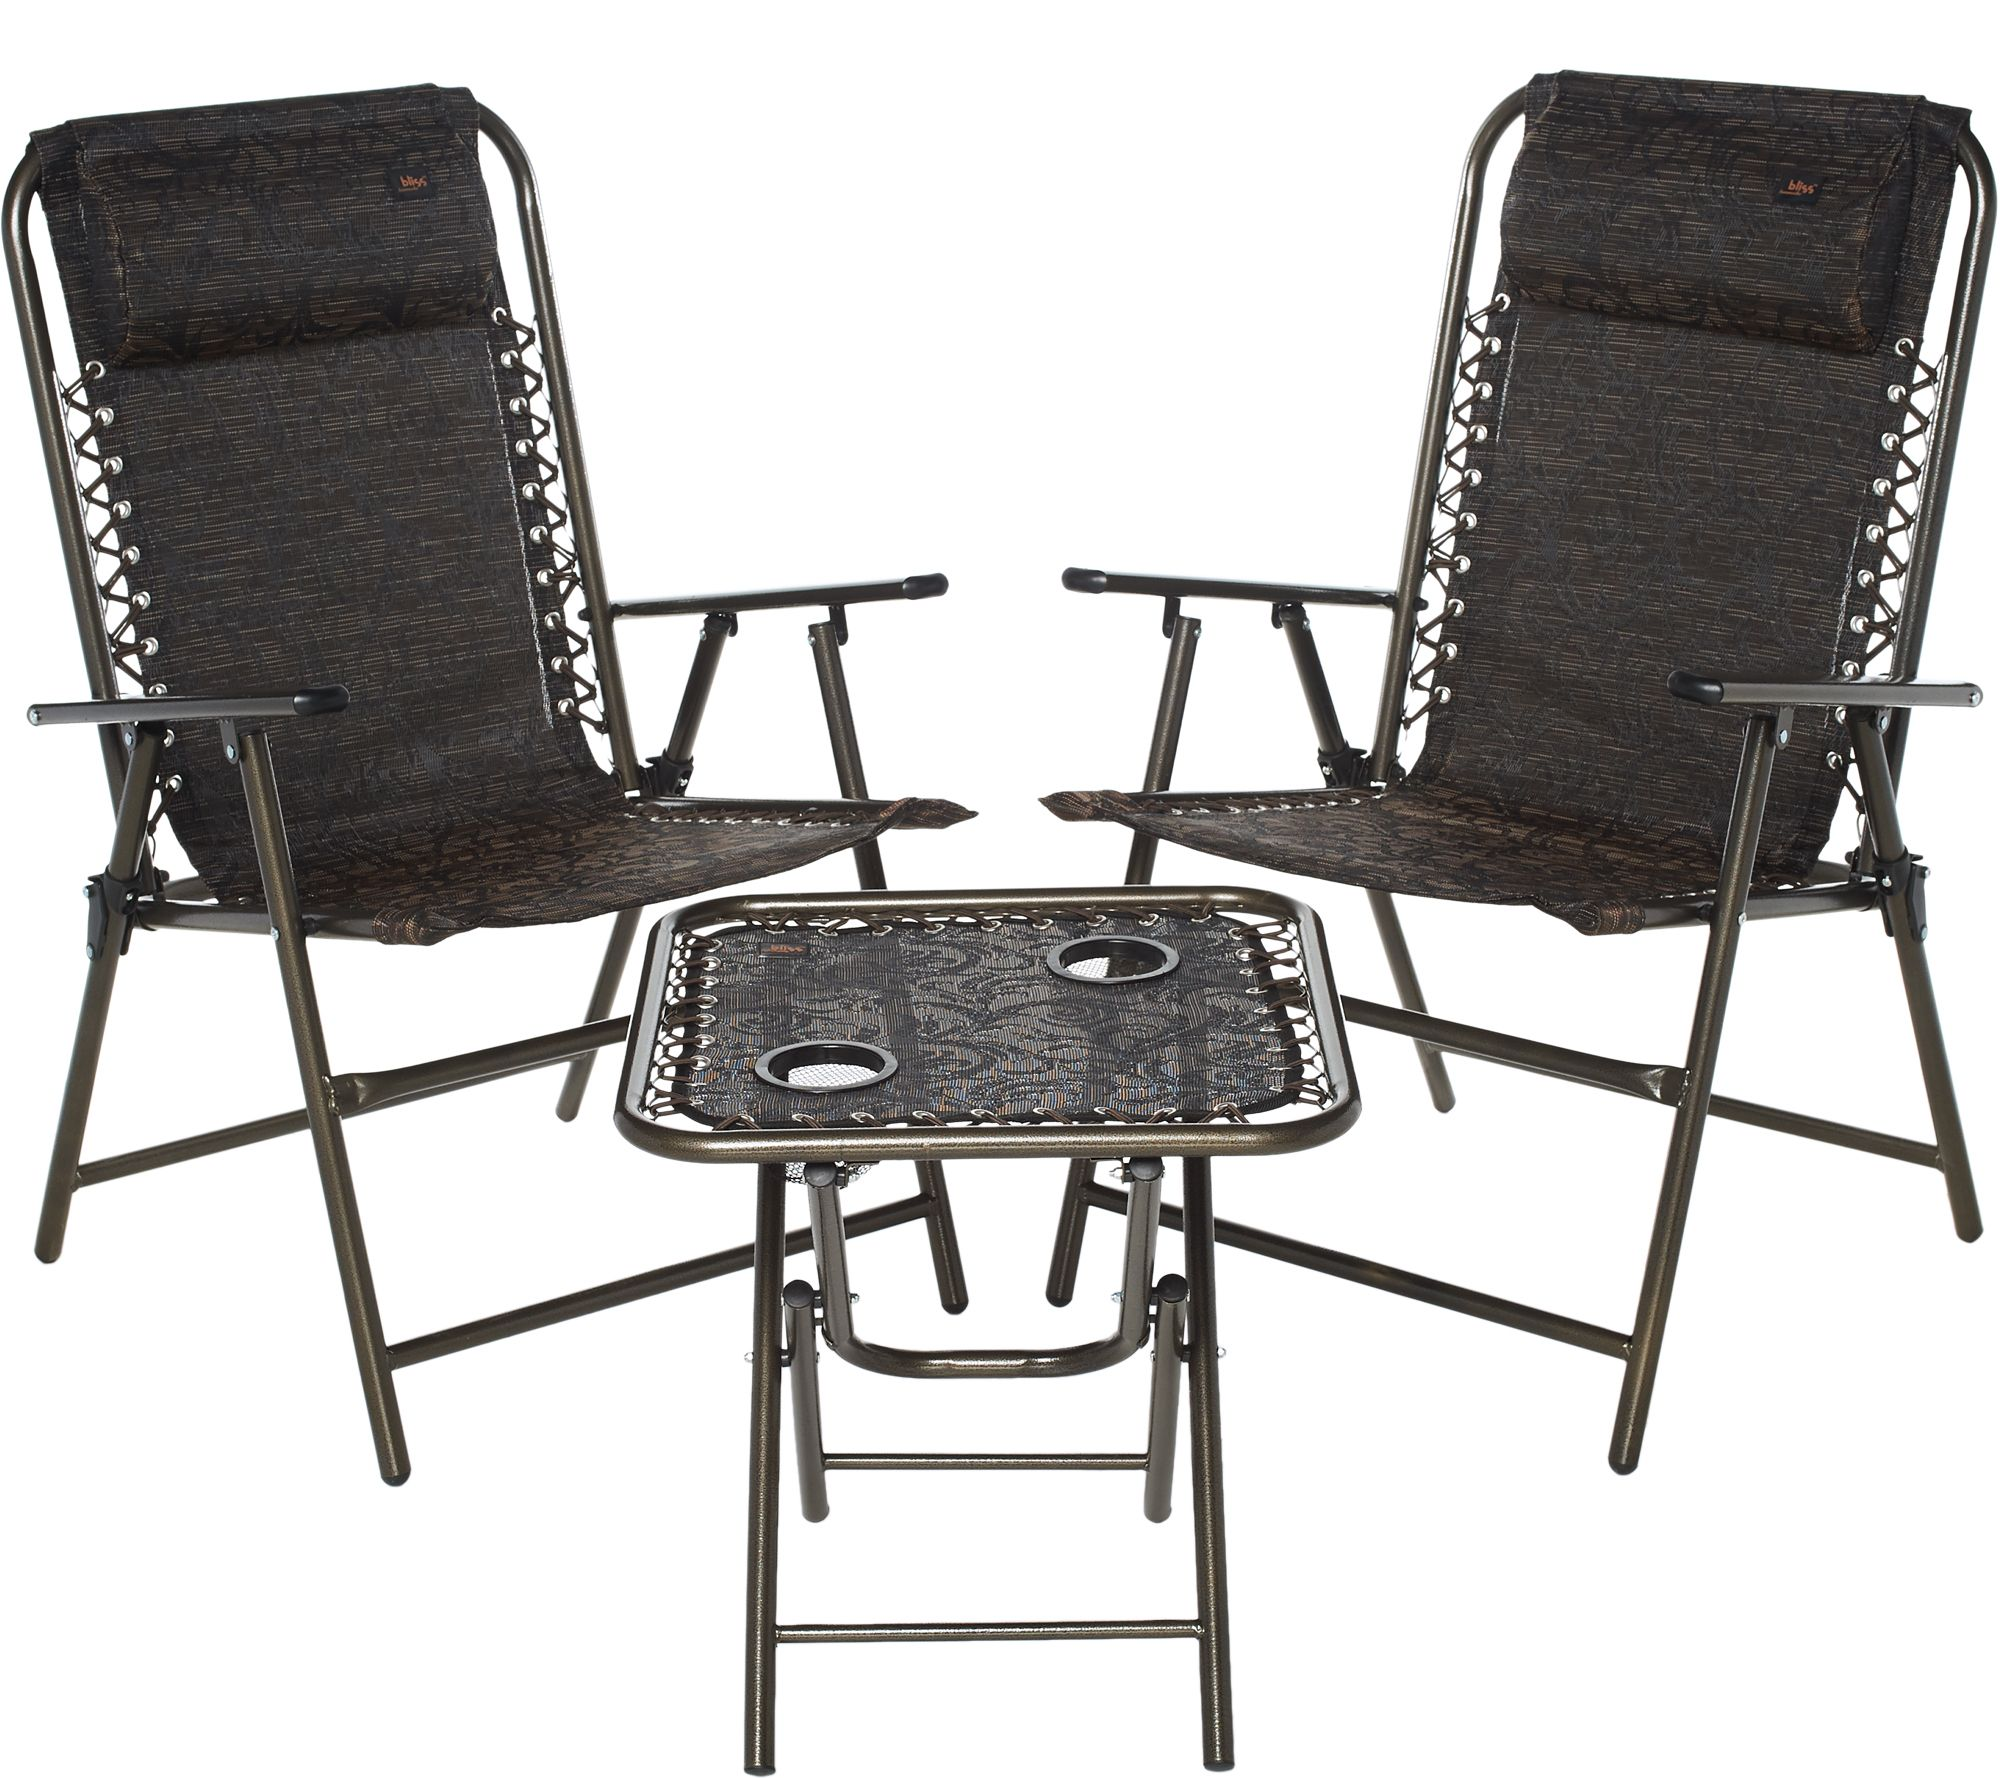 outdoor folding chair with side table mongolian fur cover bliss hammocks patio set 2 chairs and